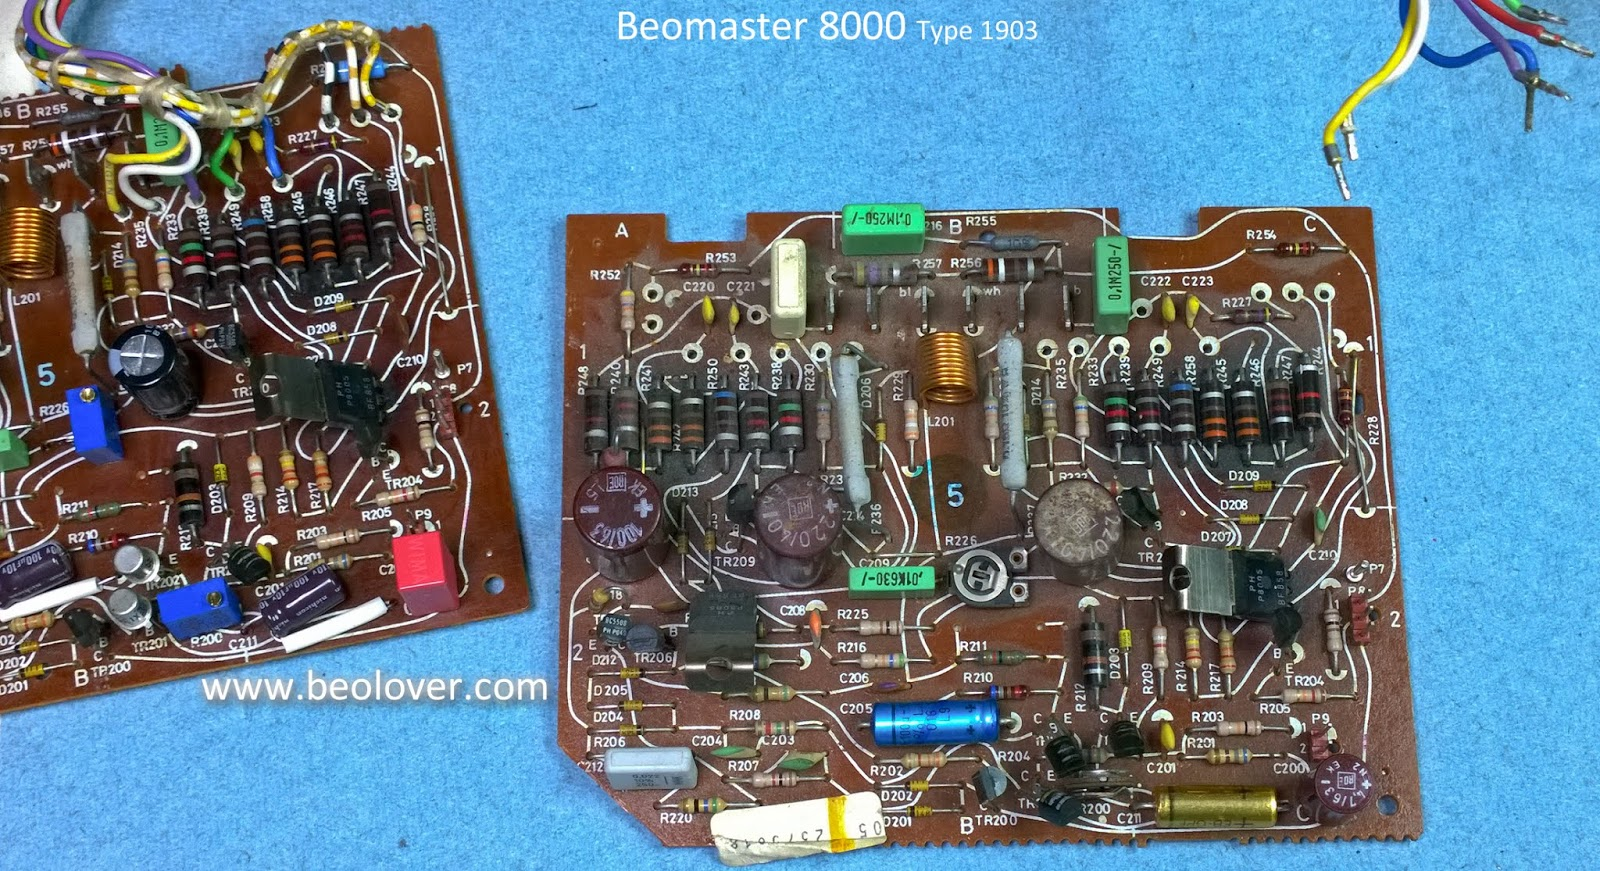 Beolover August 2018 The Resistor Is On Left Side Of Board Close To Heat Sink Like Right Channel It Had Quite A Bit Grime And Dust Heatsink